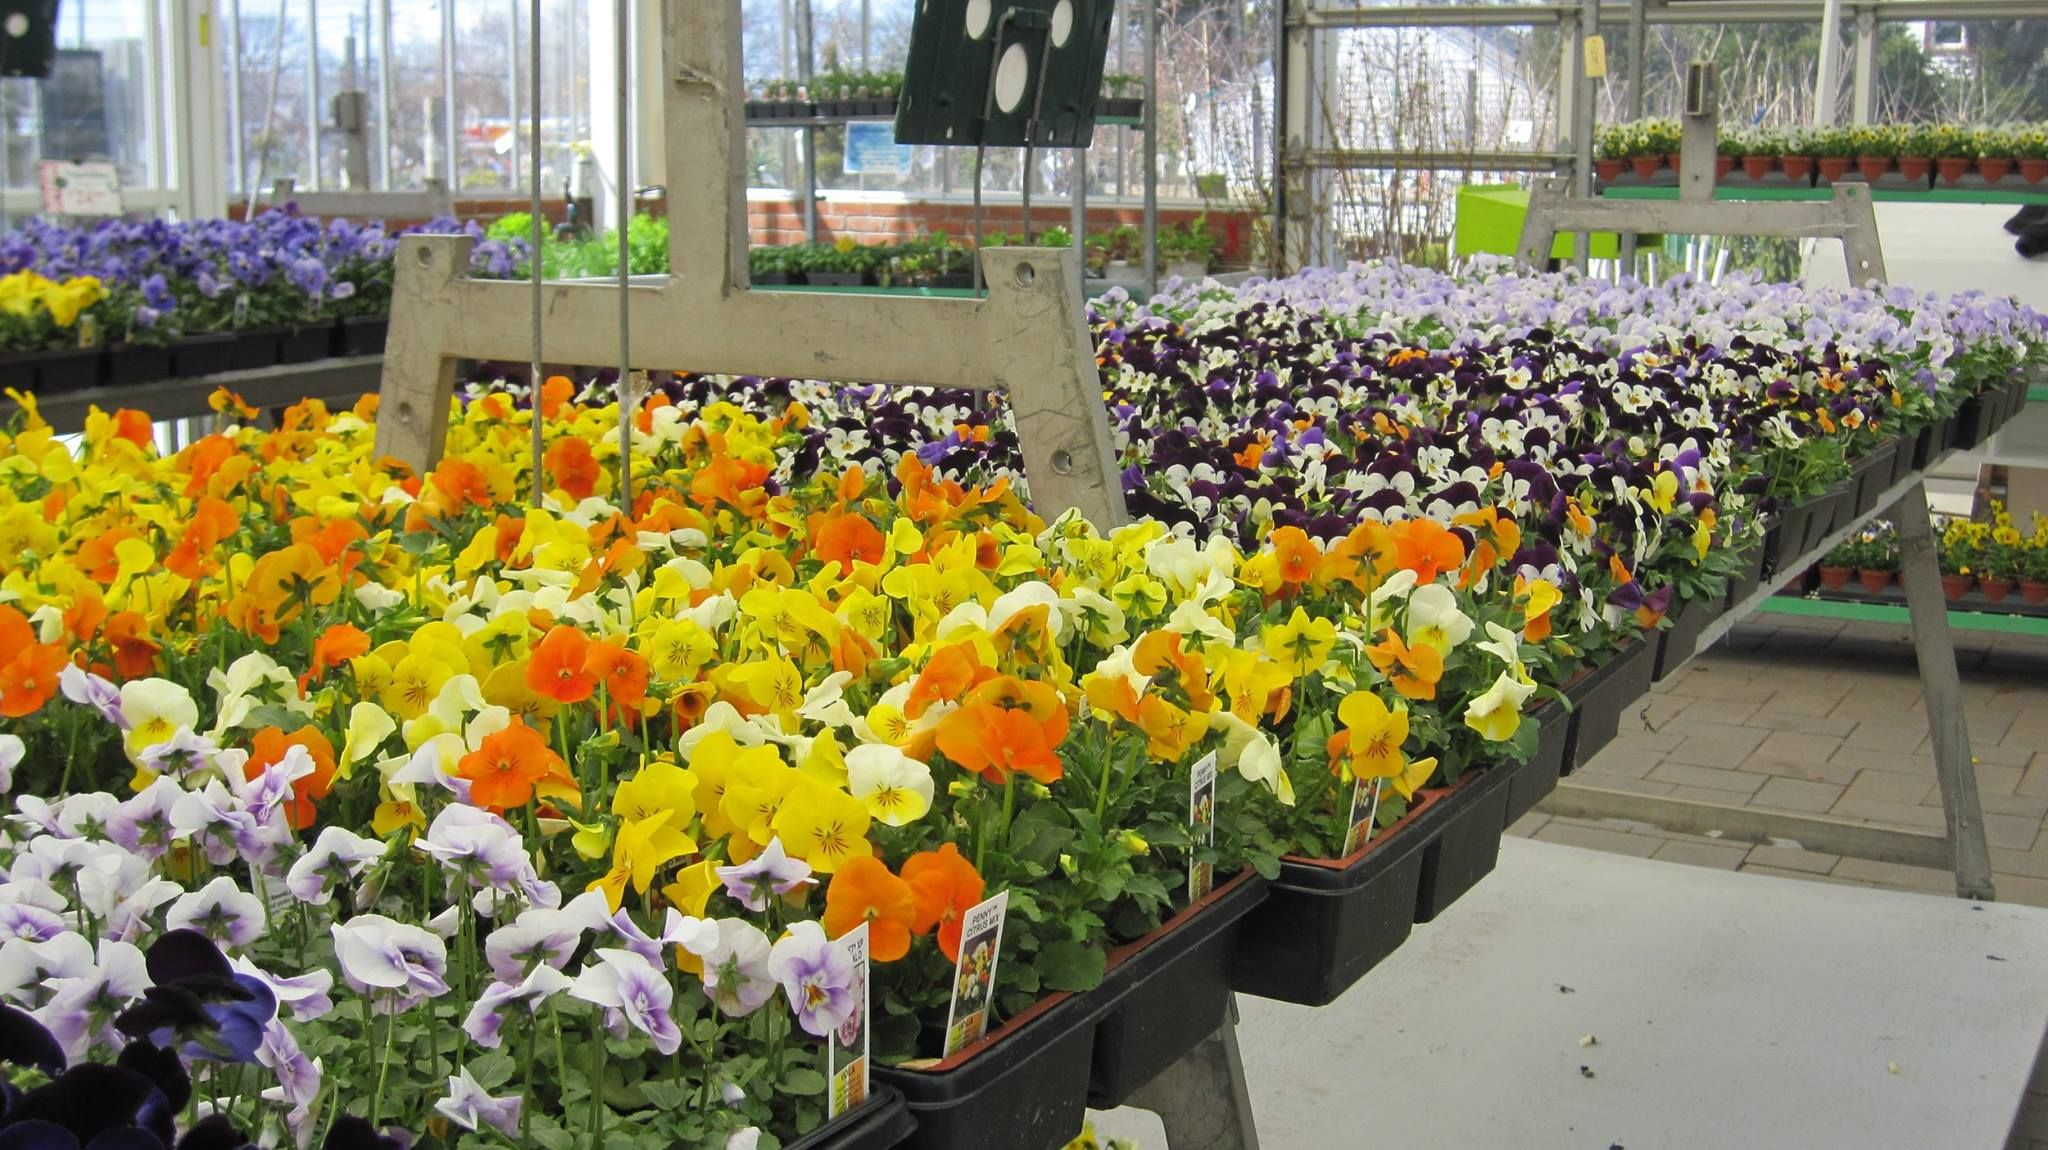 ATLANTIC NURSERY U0026 GARDEN SHOP 250 Atlantic Avenue Freeport, NY 11520 4927  Phone: